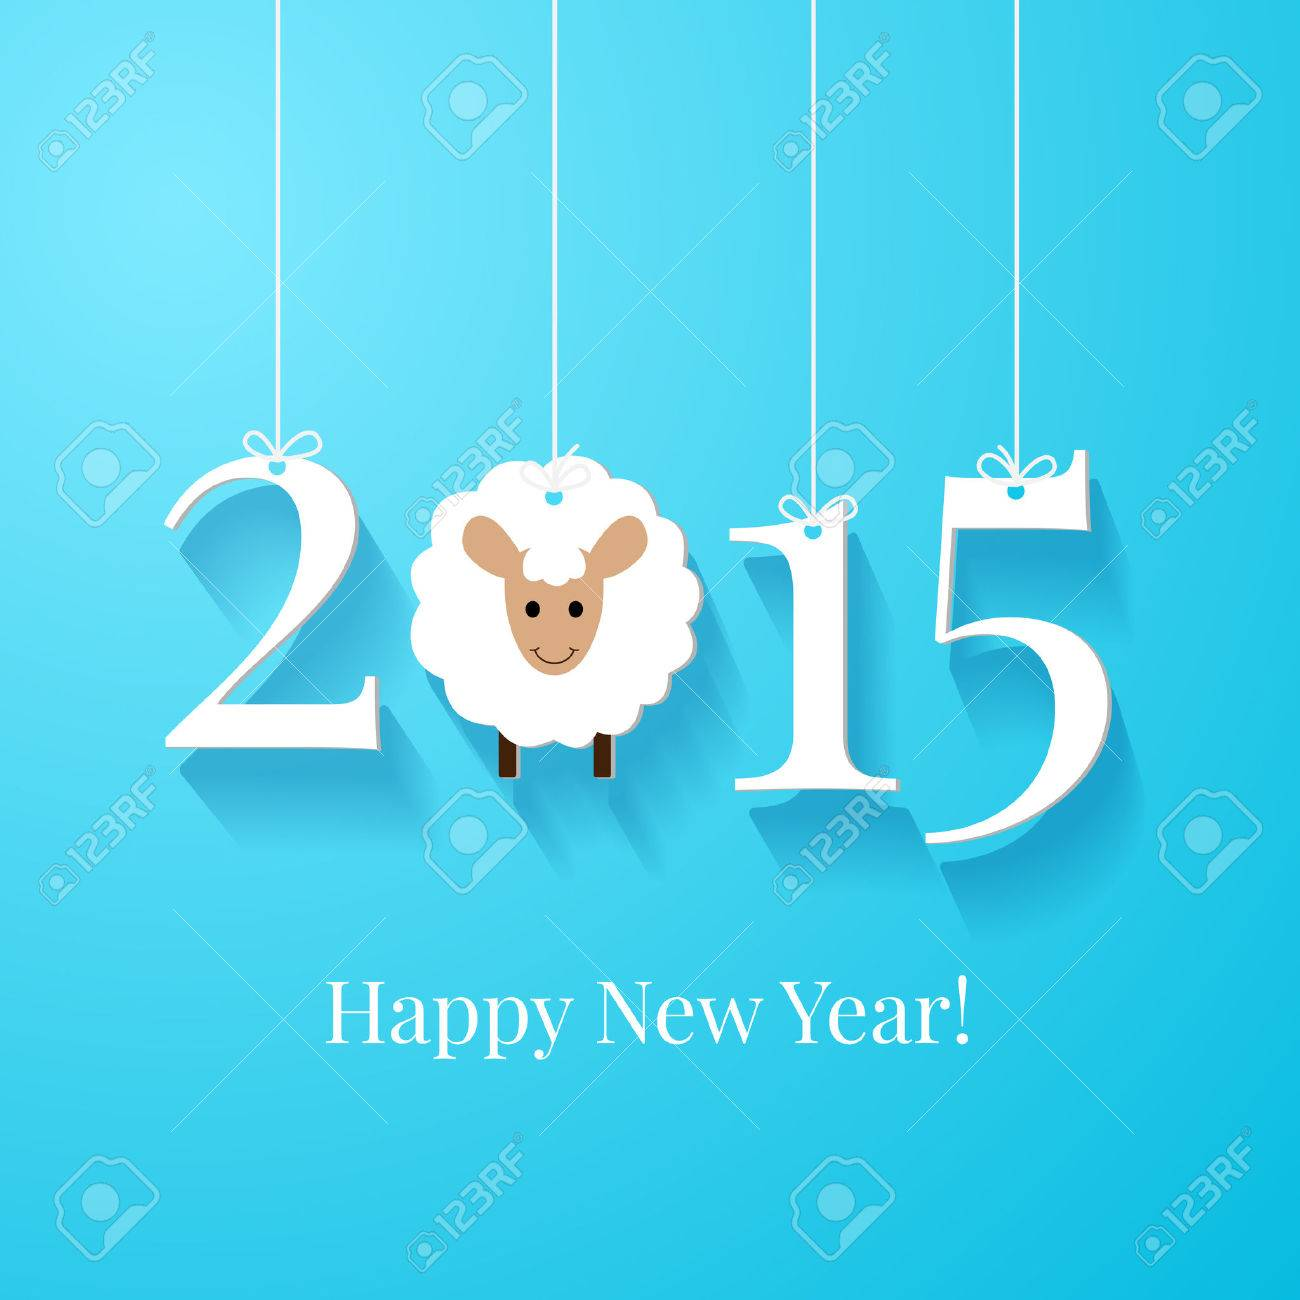 Happy new year greetings card or background white tags with happy new year greetings card or background white tags with 2015 on blue background stock m4hsunfo